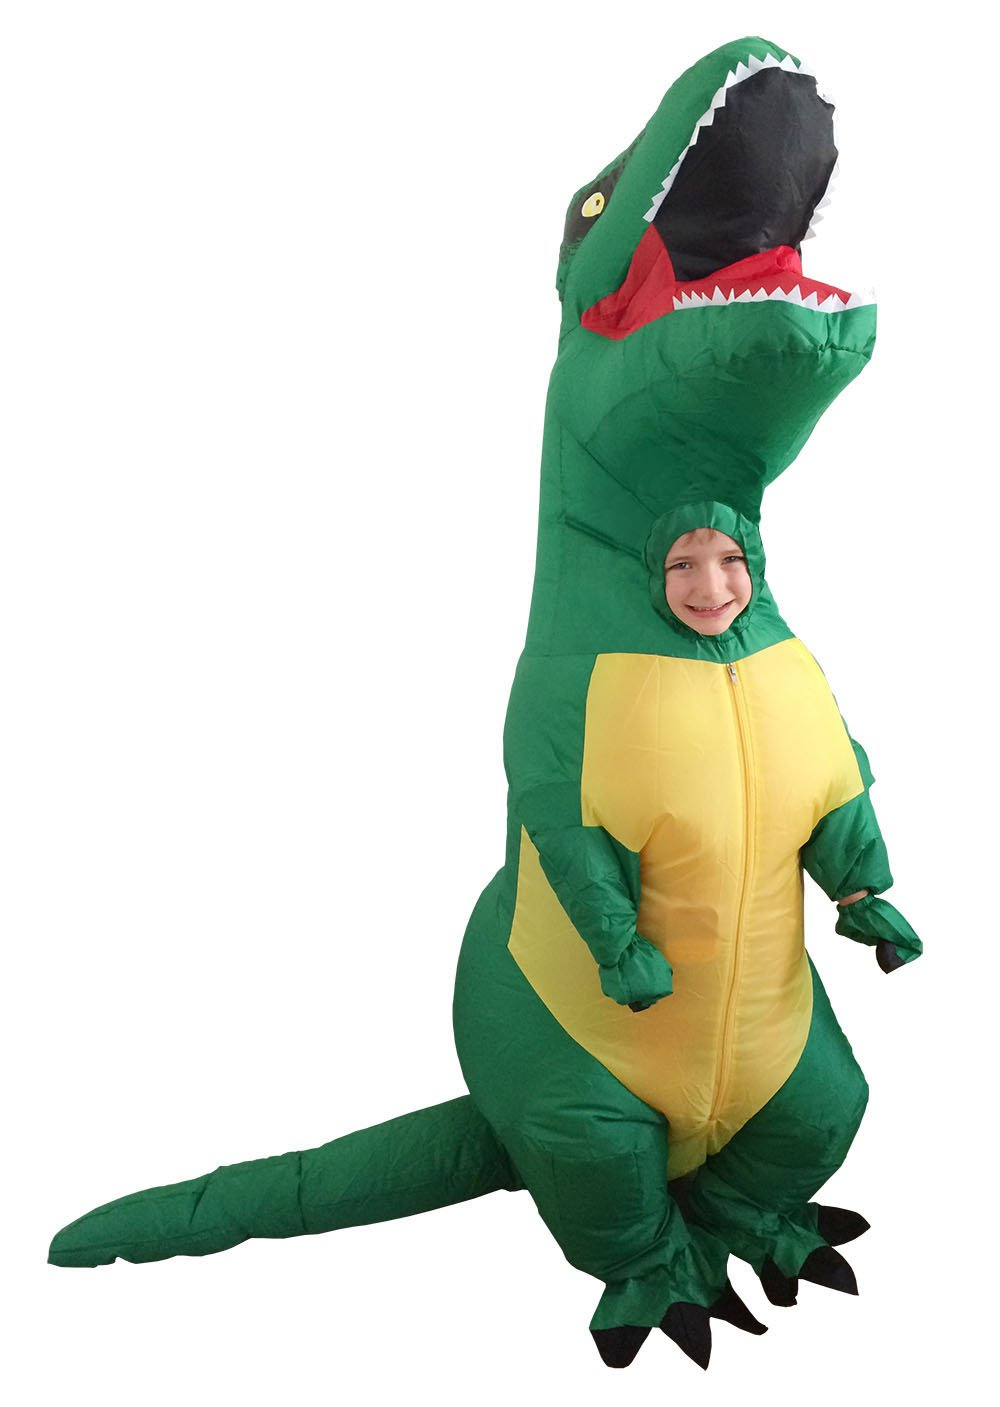 GoPrime T-rex Inflatable Costume,Kid's Size,Pick up School Bus,Scare Dogs (GGK)